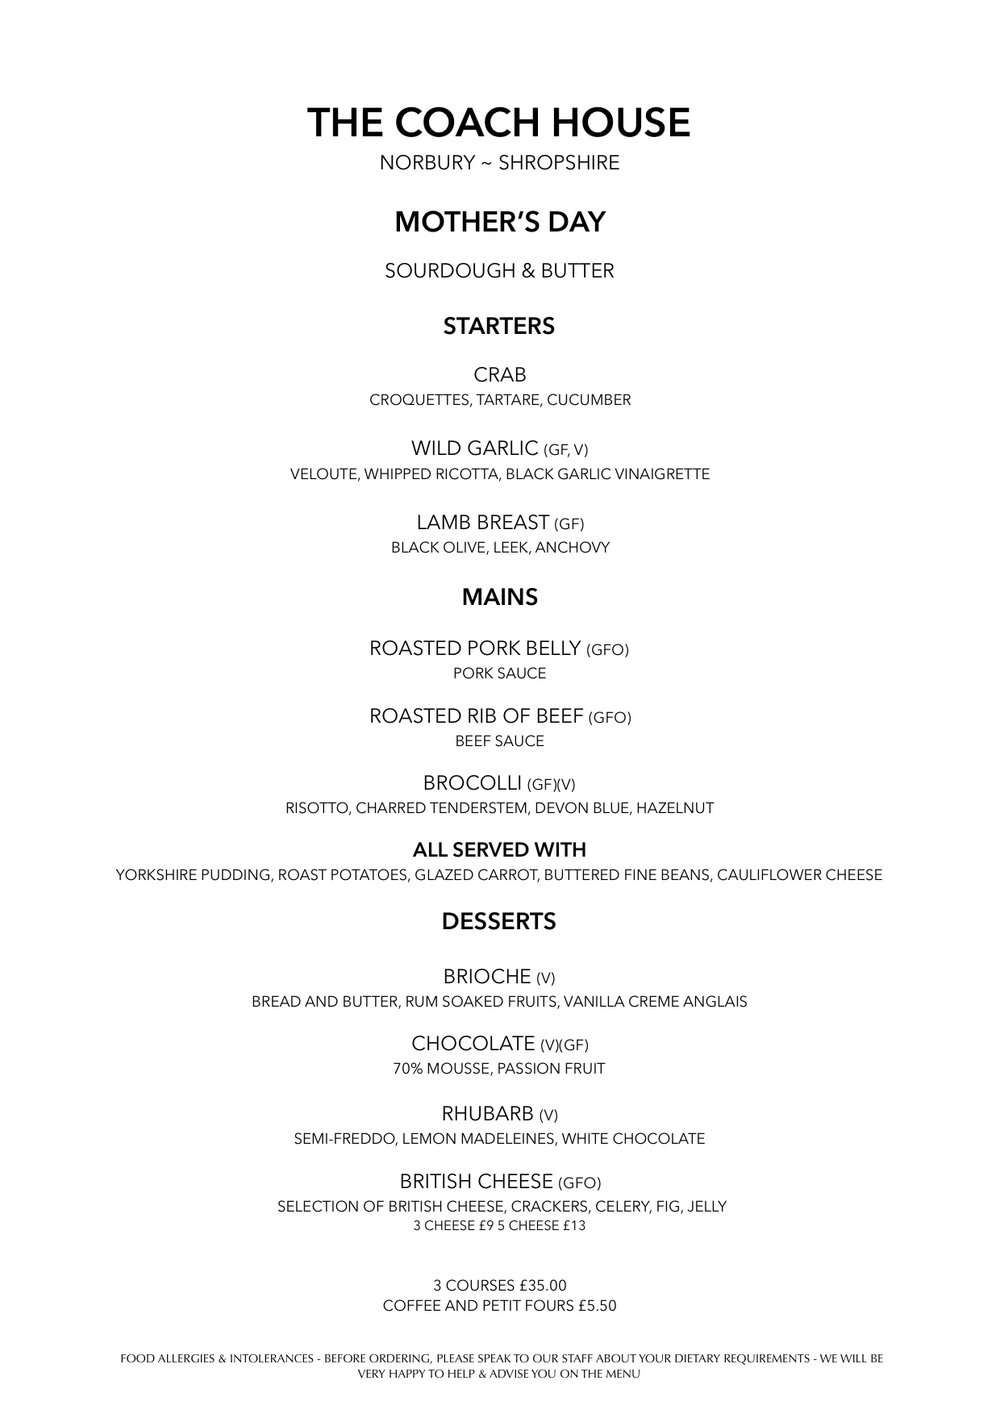 MARCH COACH HOUSE NORBURY 2019 MOTHERS DAY Menu  PDF.jpg